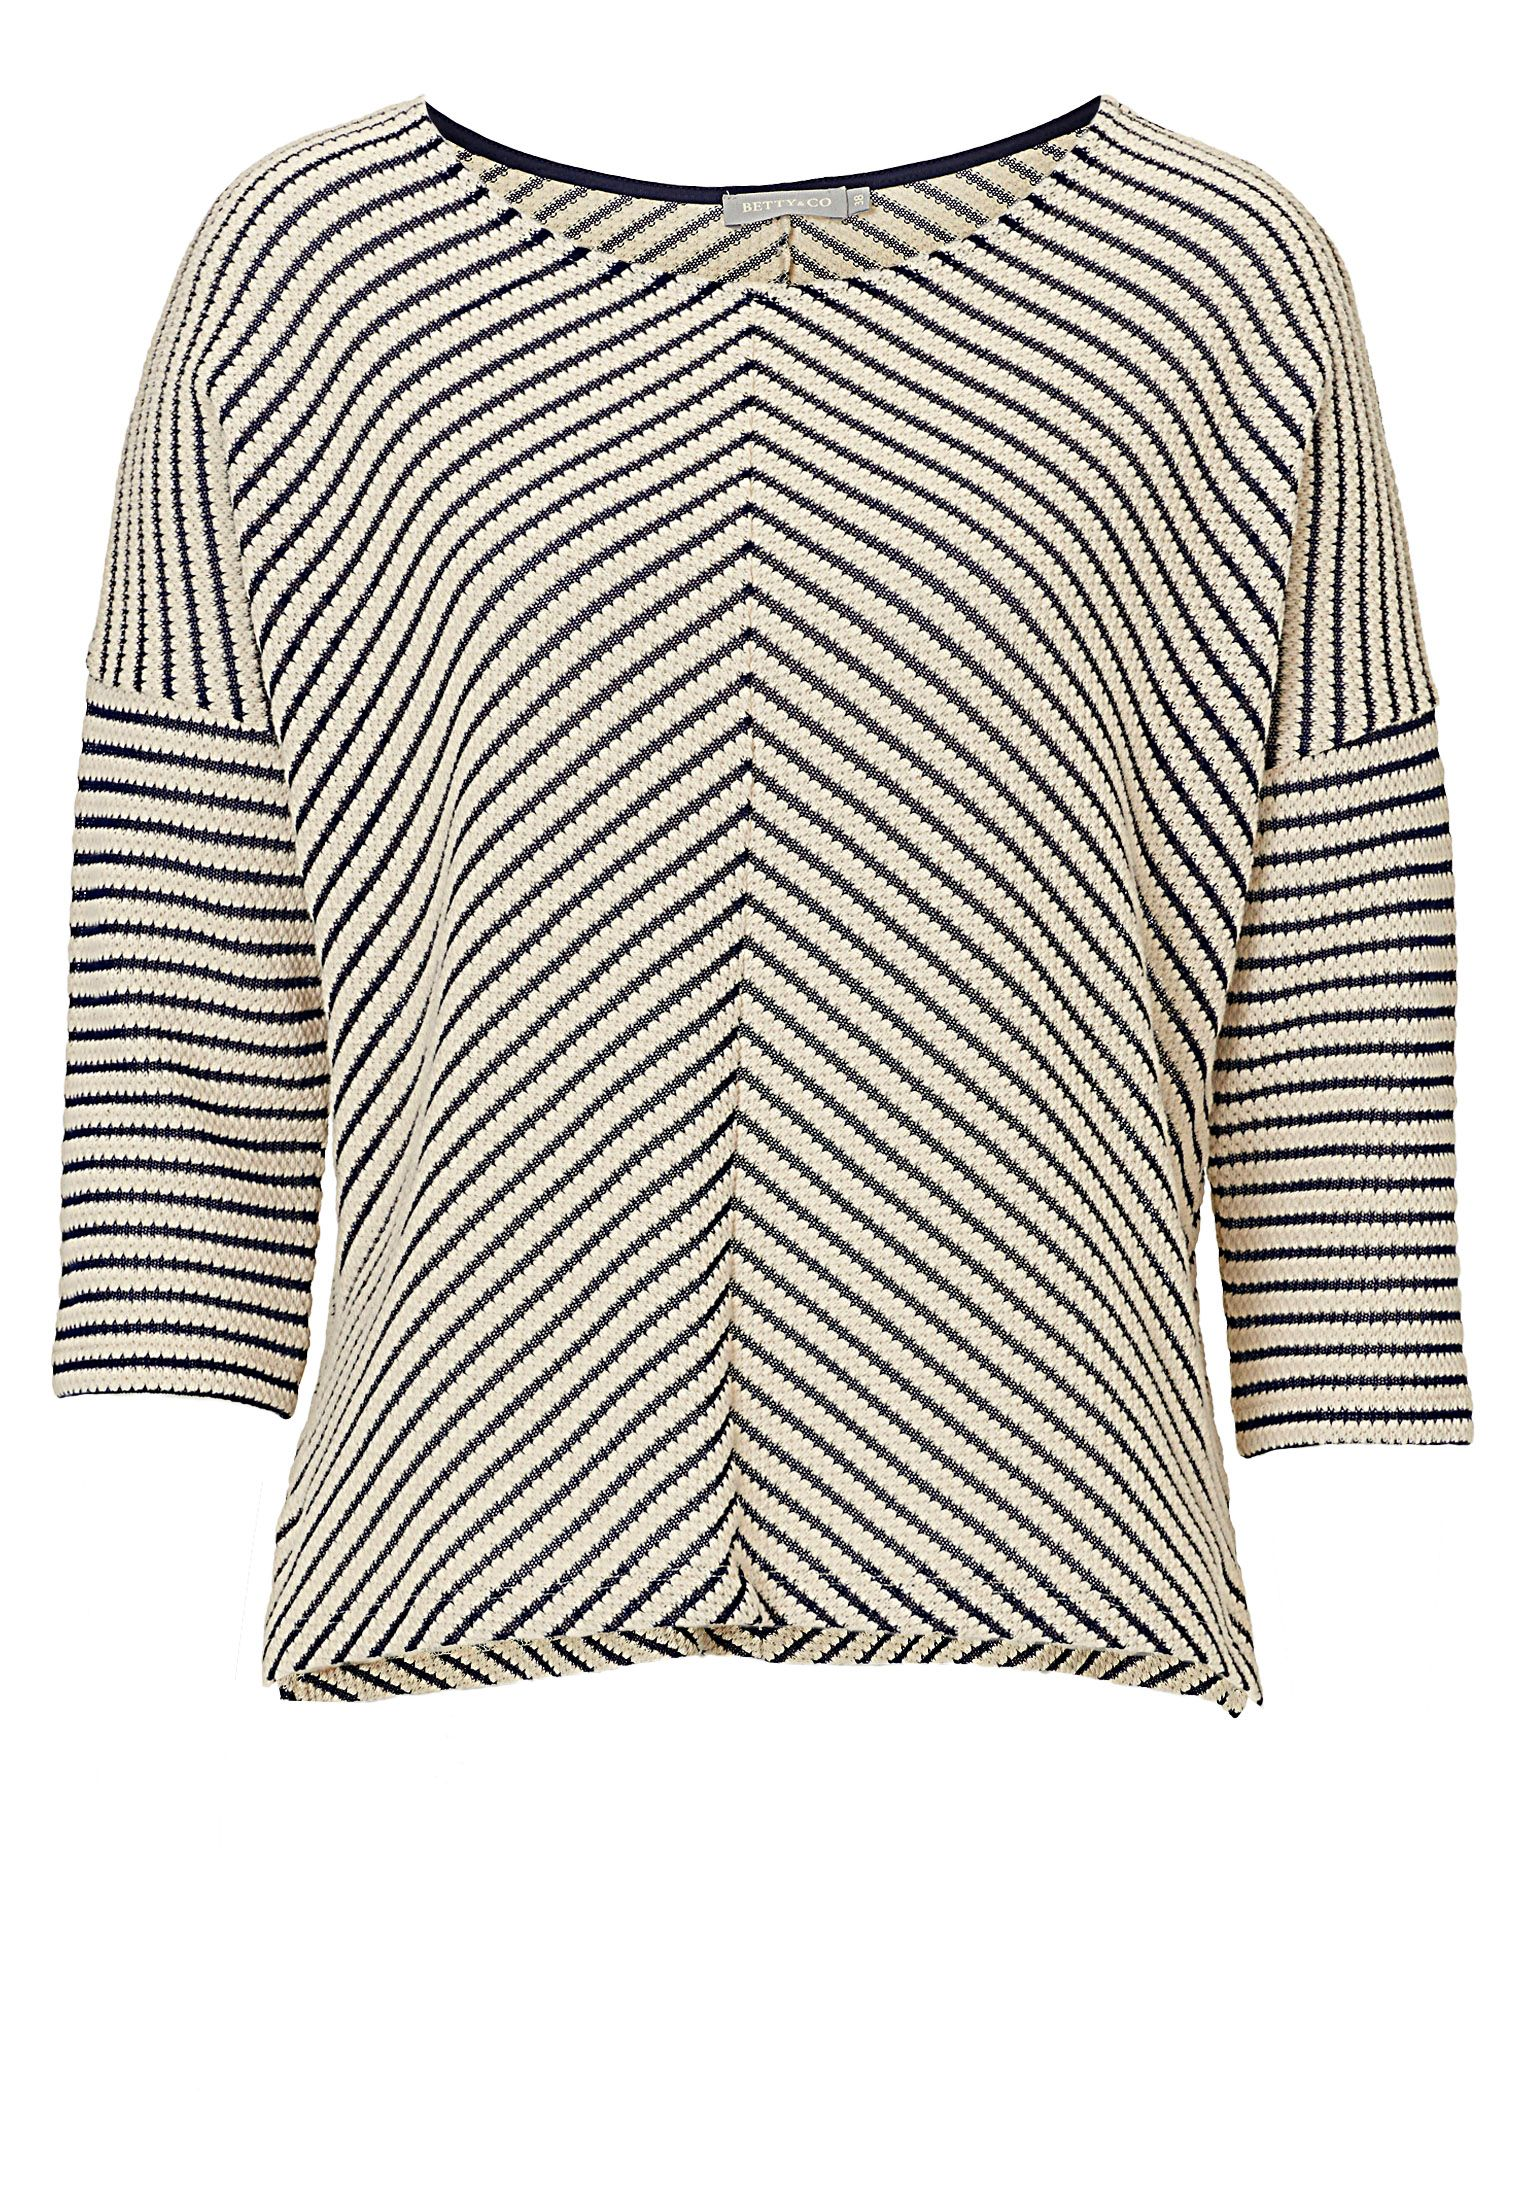 Betty & Co. Chevron striped top, Cream